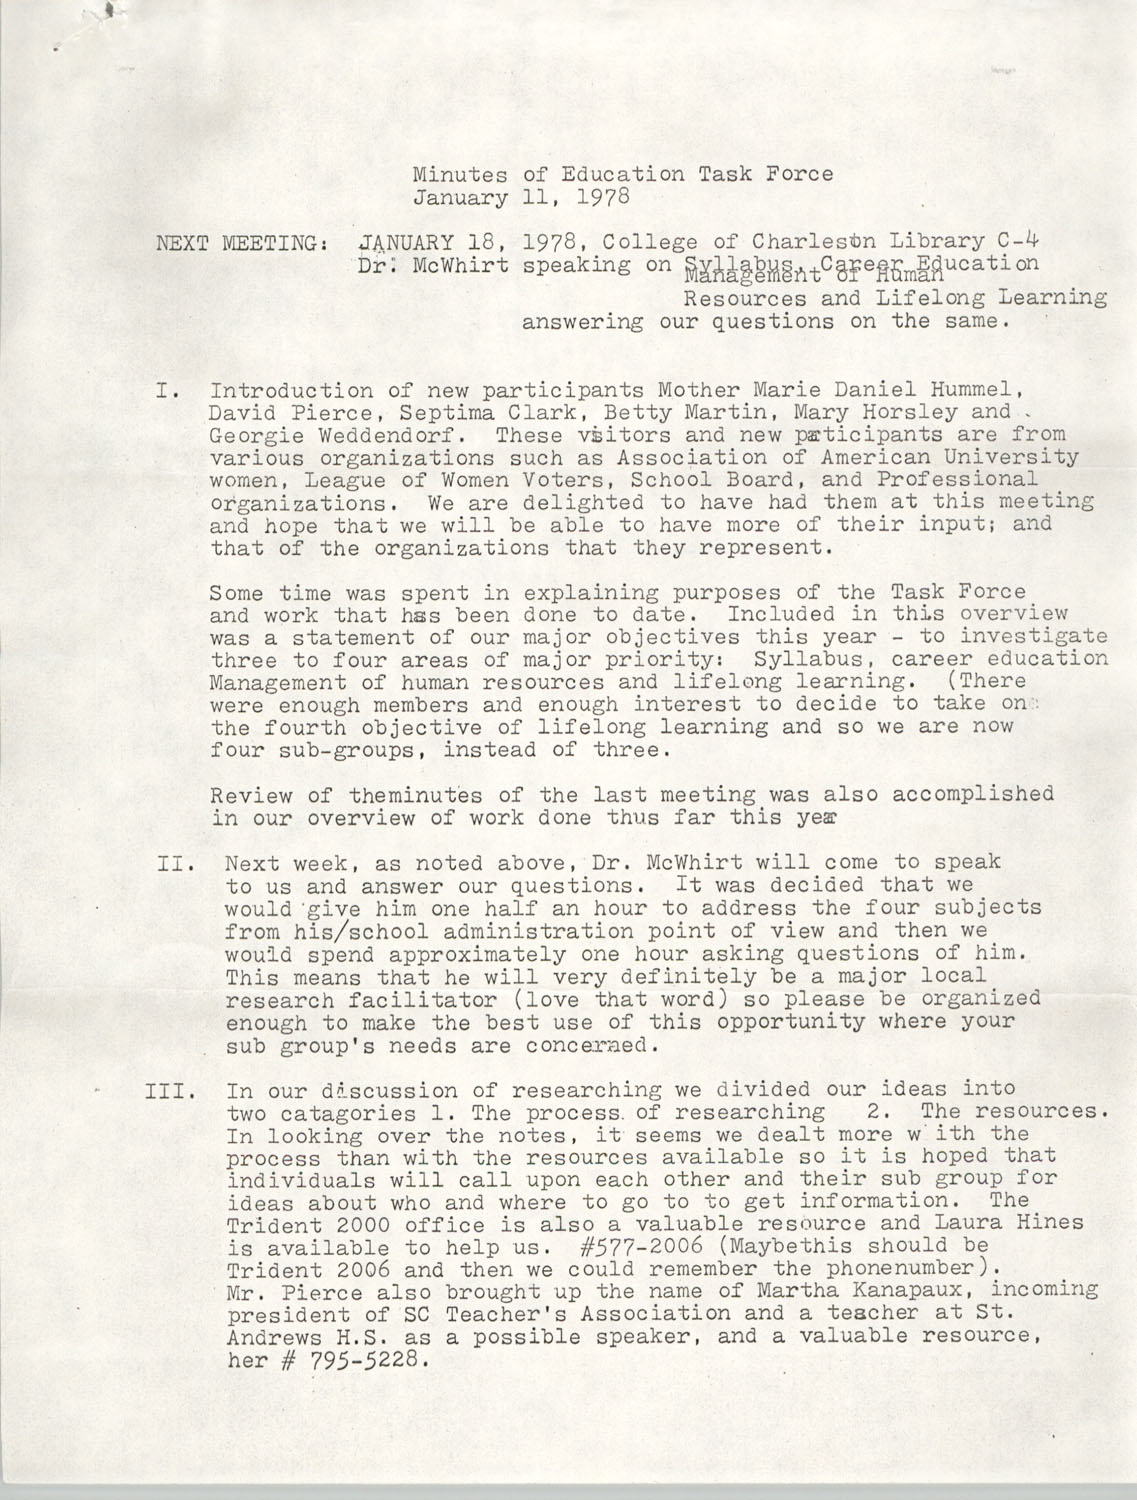 Minutes of the Trident Education Task Force, January 11, 1978